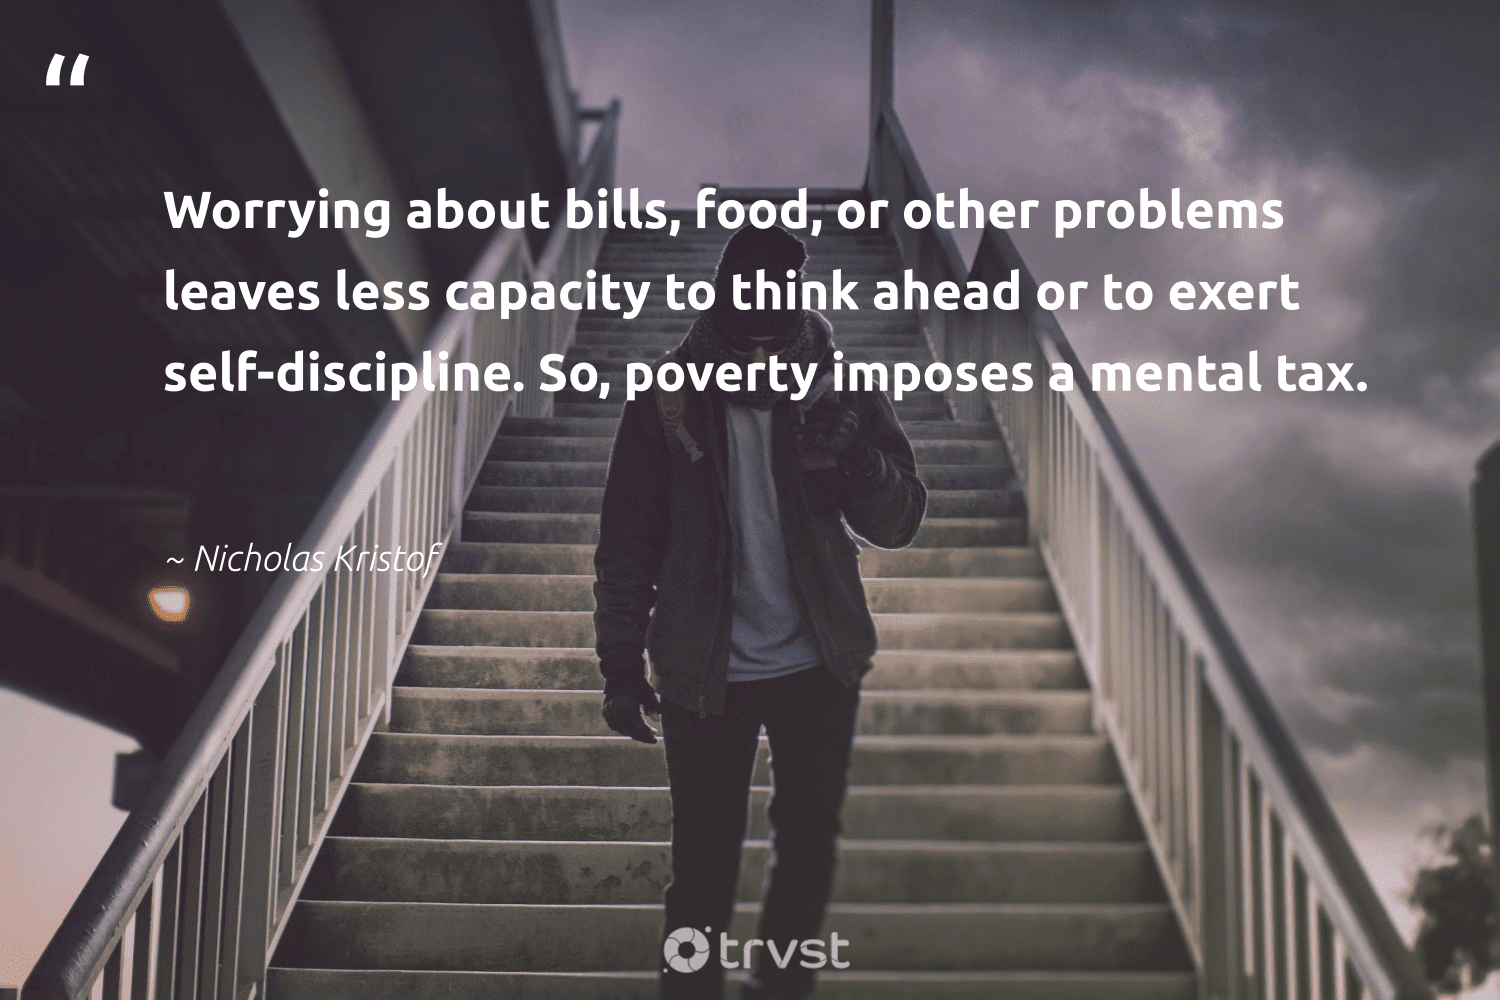 """""""Worrying about bills, food, or other problems leaves less capacity to think ahead or to exert self-discipline. So, poverty imposes a mental tax.""""  - Nicholas Kristof #trvst #quotes #poverty #food #endpoverty #equalopportunity #weareallone #ecoconscious #equalrights #makeadifference #impact #sustainablefutures"""